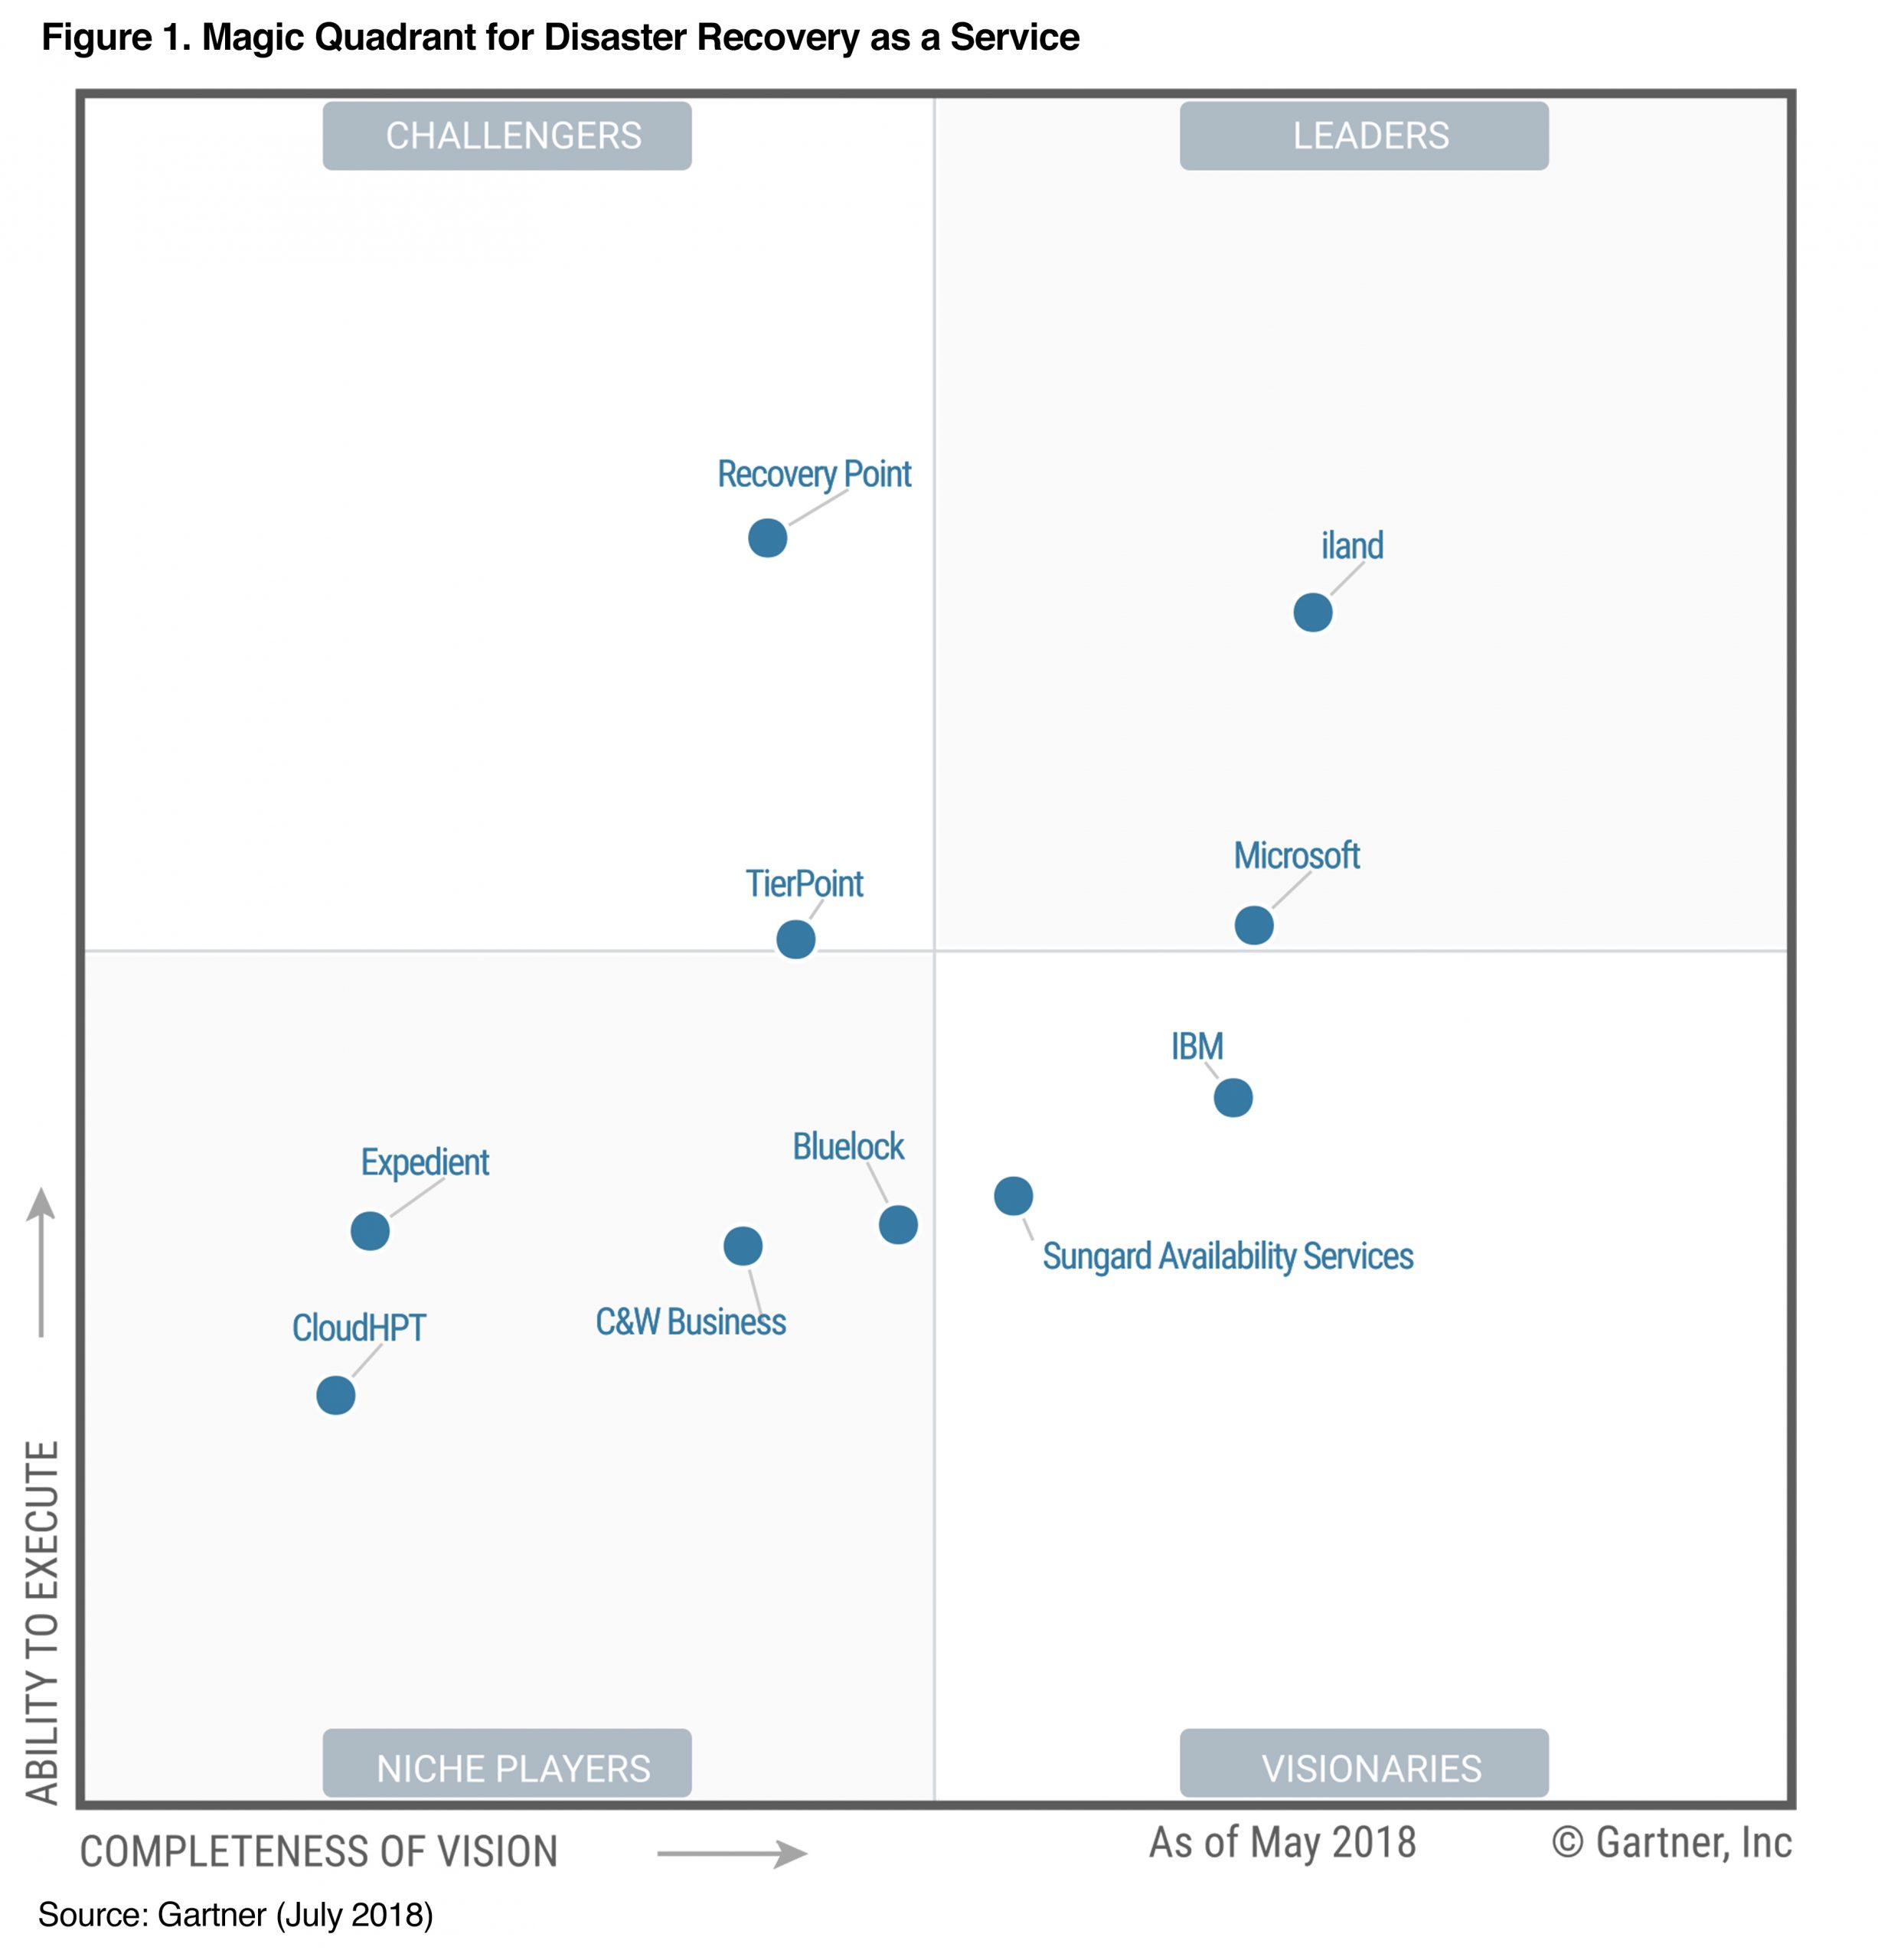 Gartner Magic Quadrant Disaster Recovery as a Service